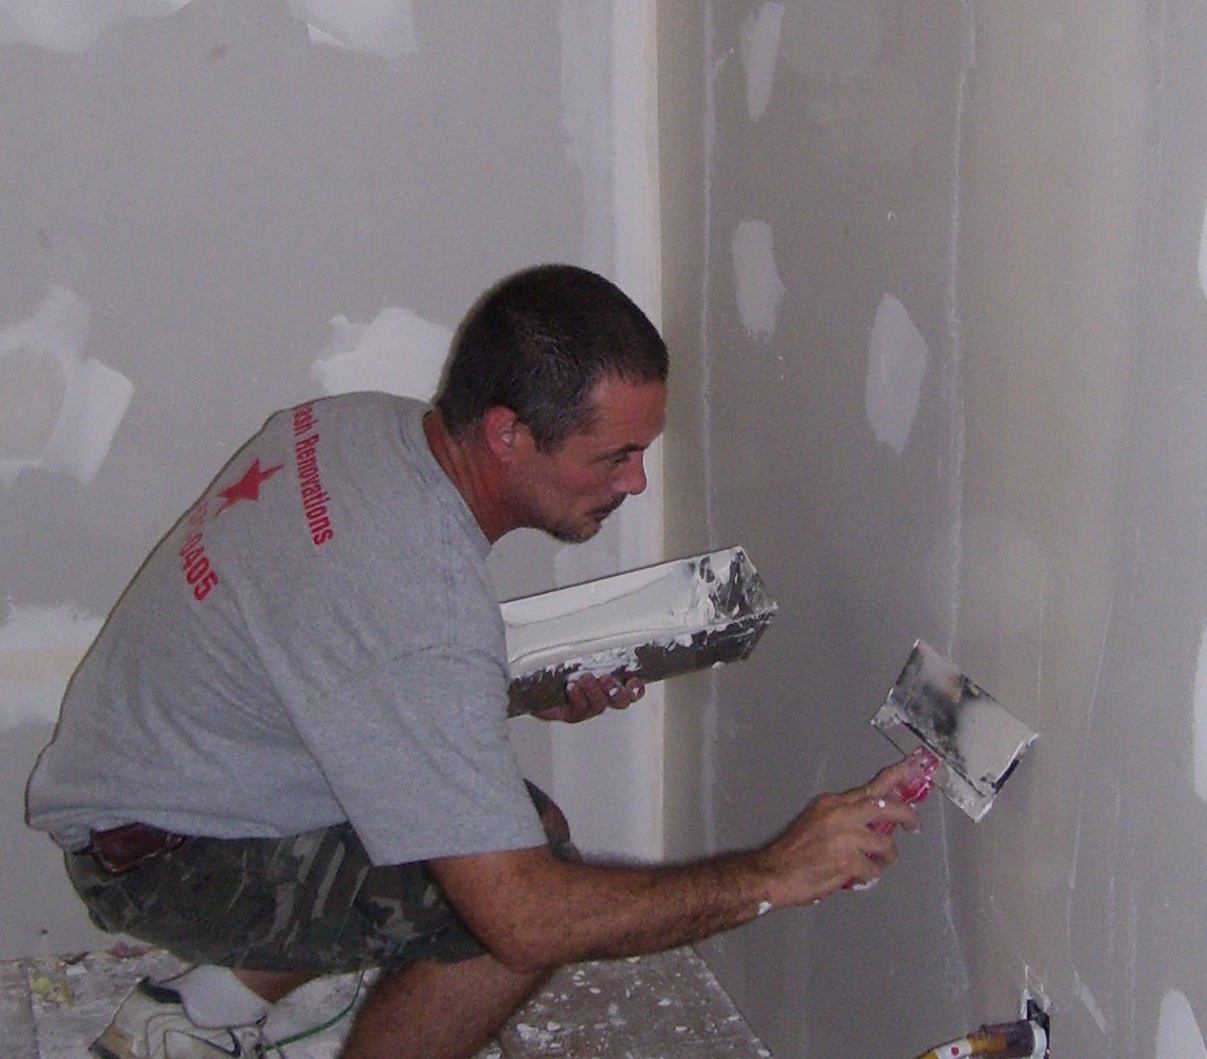 Fiveash Renovations Mike Mudding the drywall